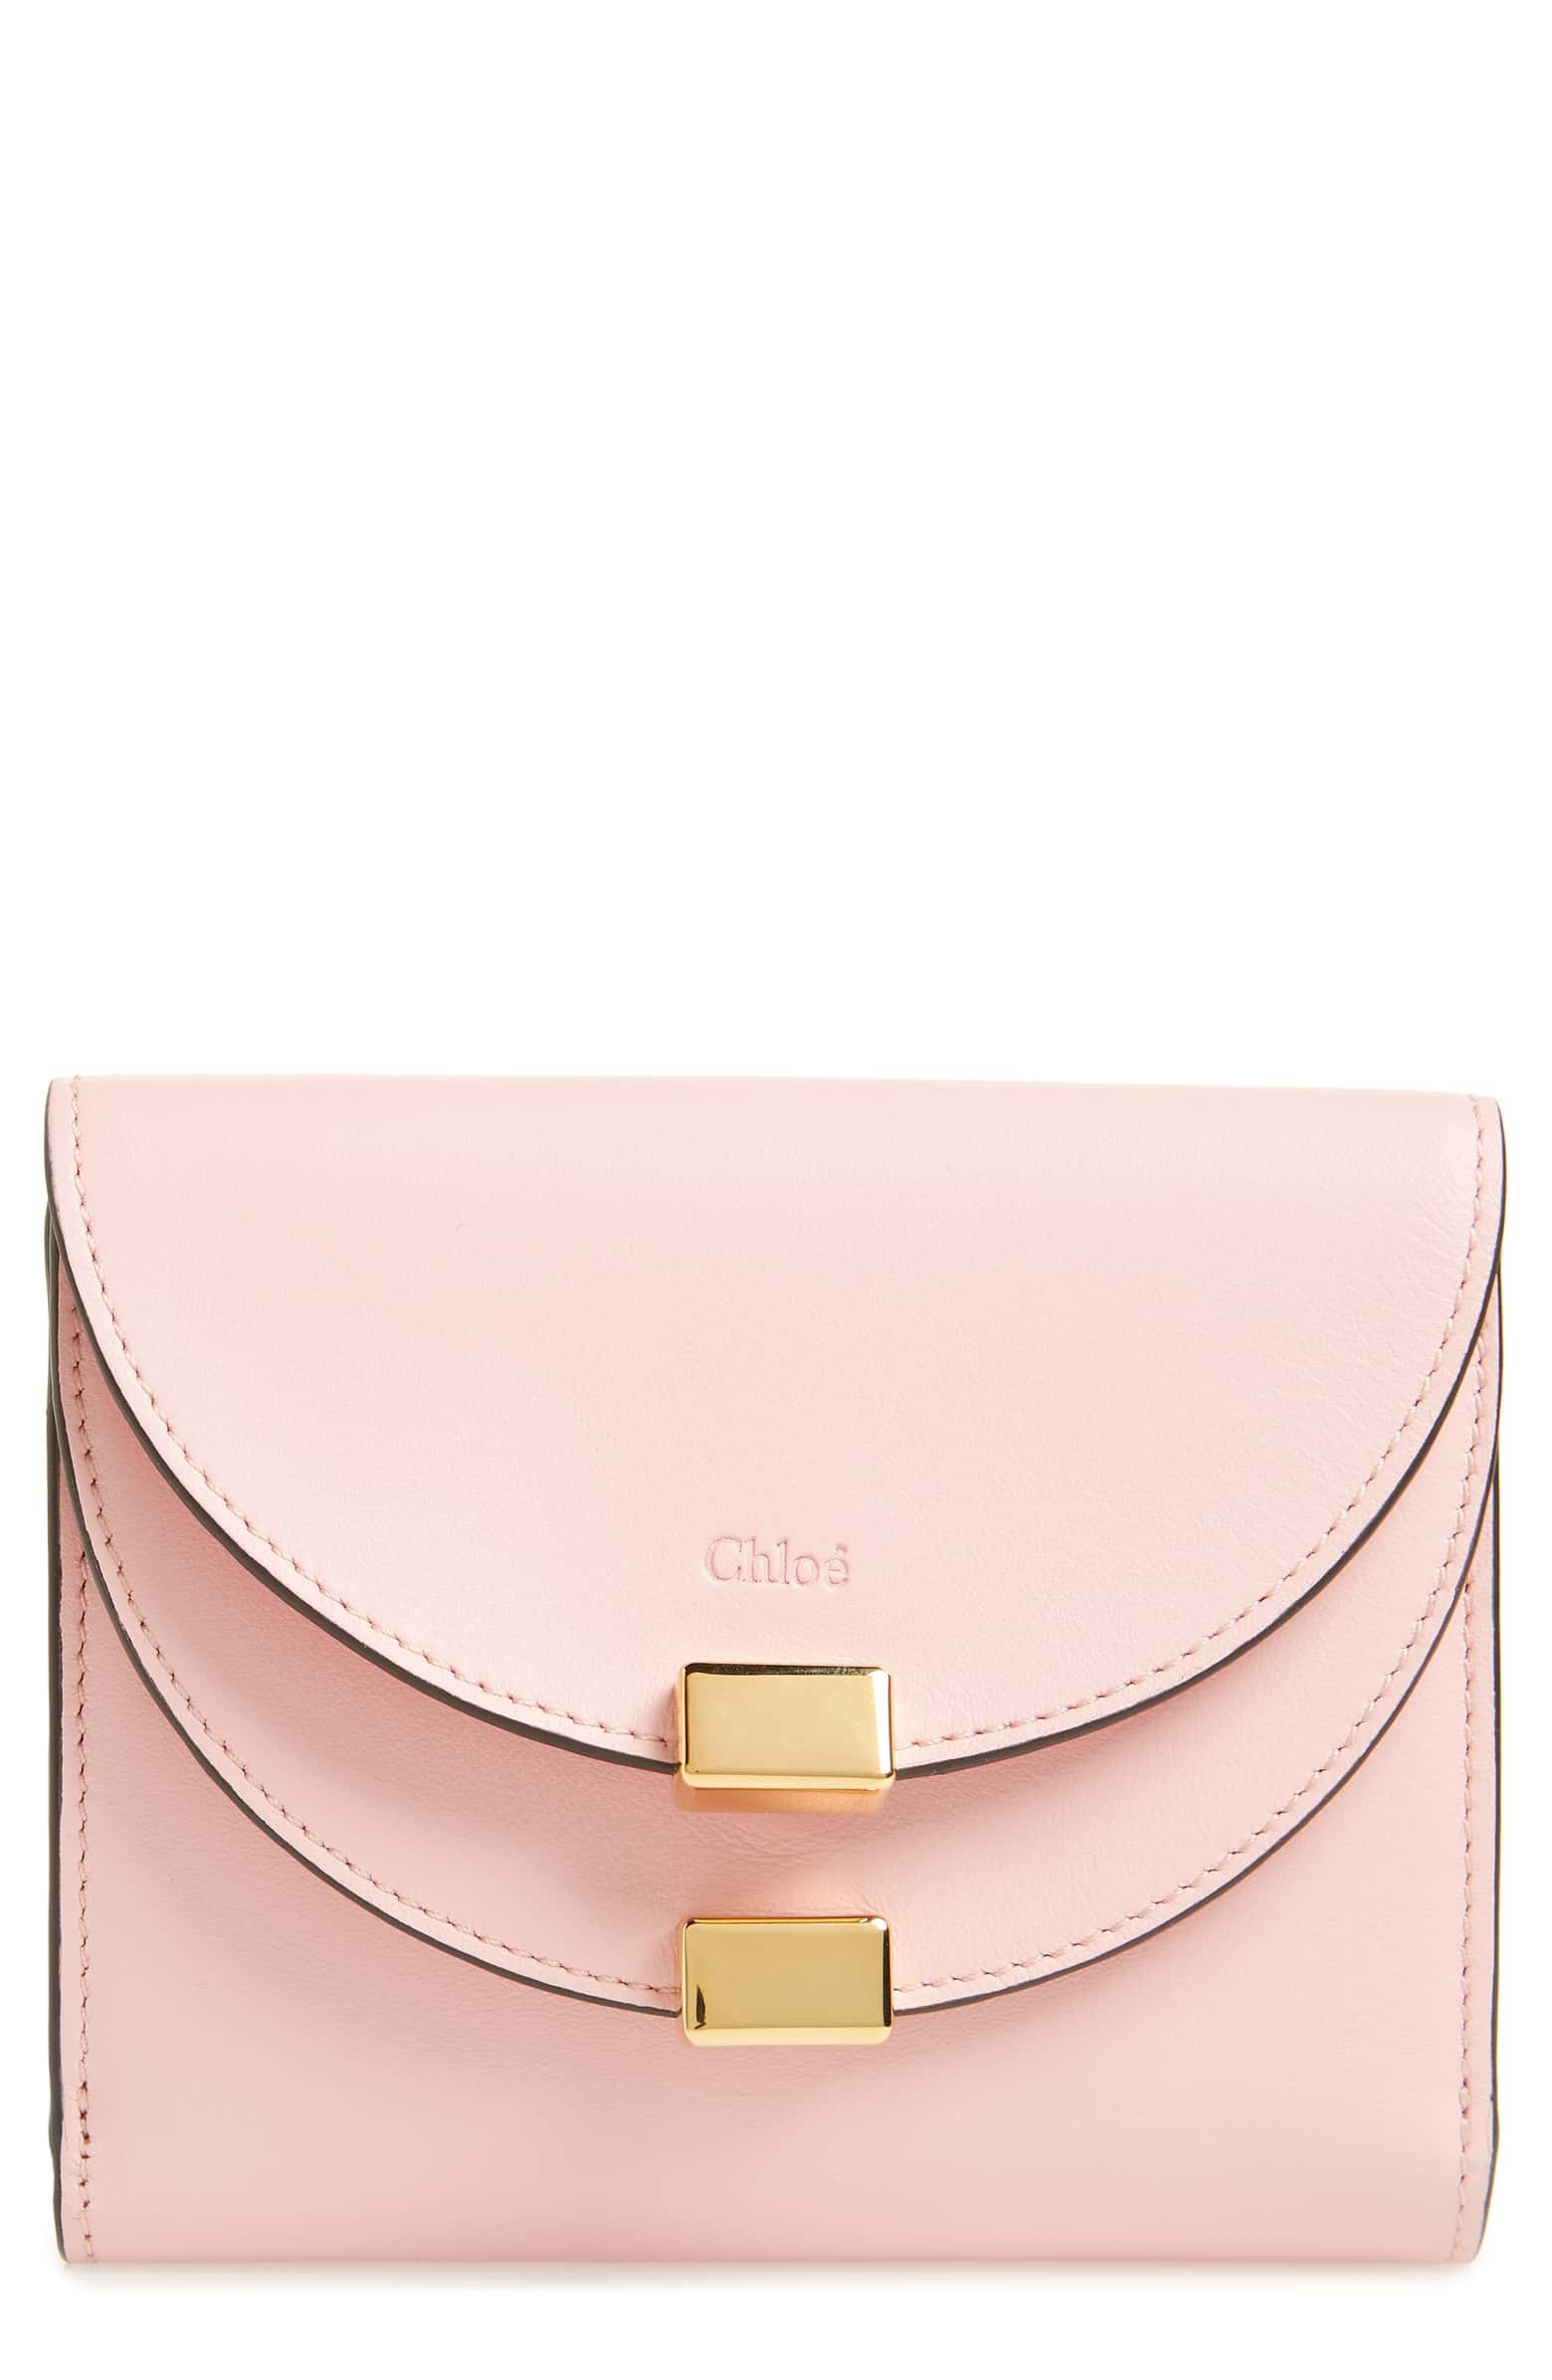 chloe square leather wallet.jpg